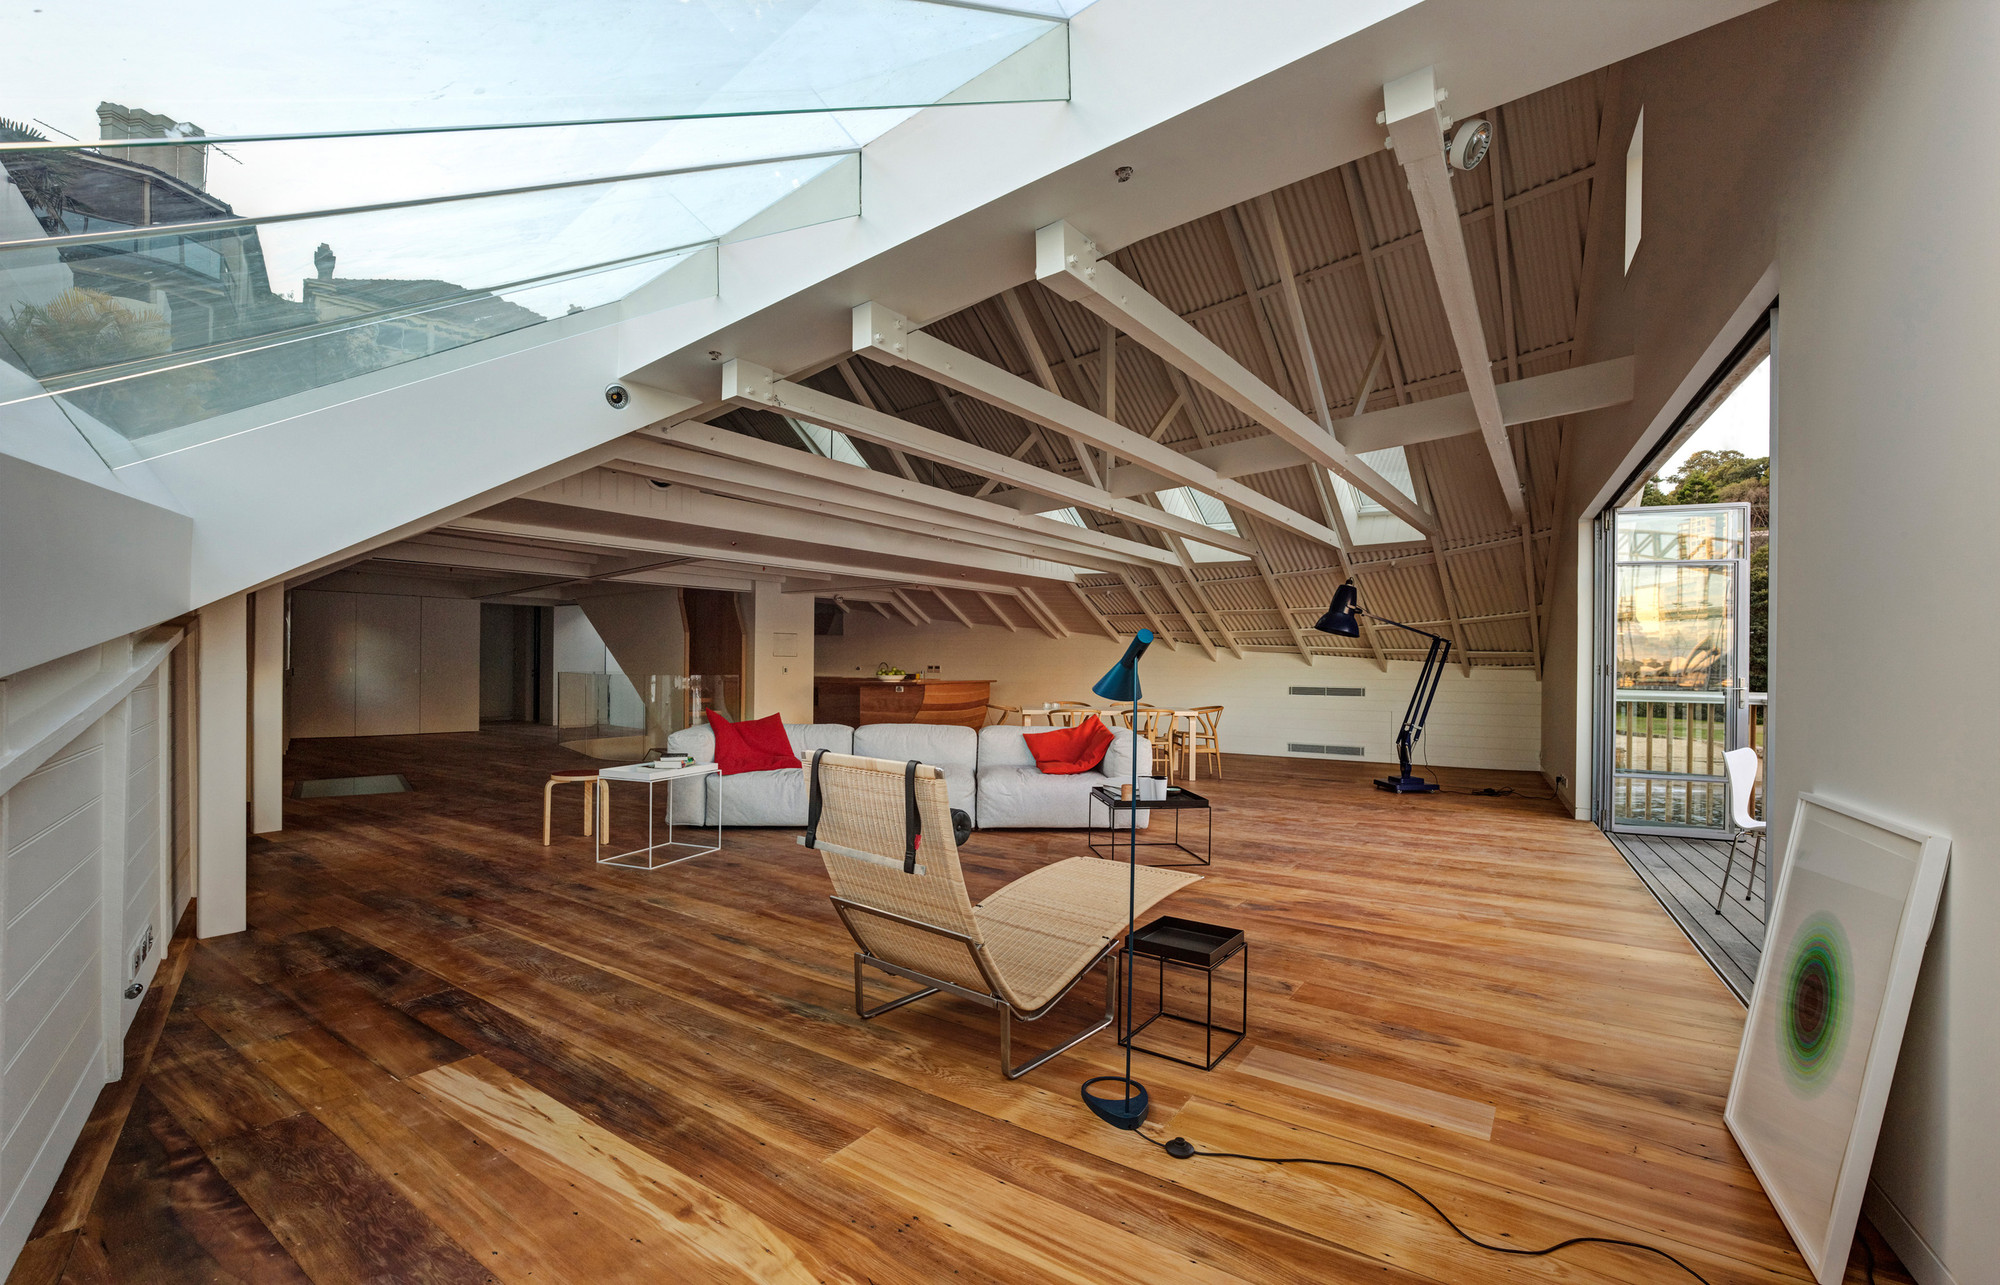 Lavender Bay Boatshed / Stephen Collier Architects